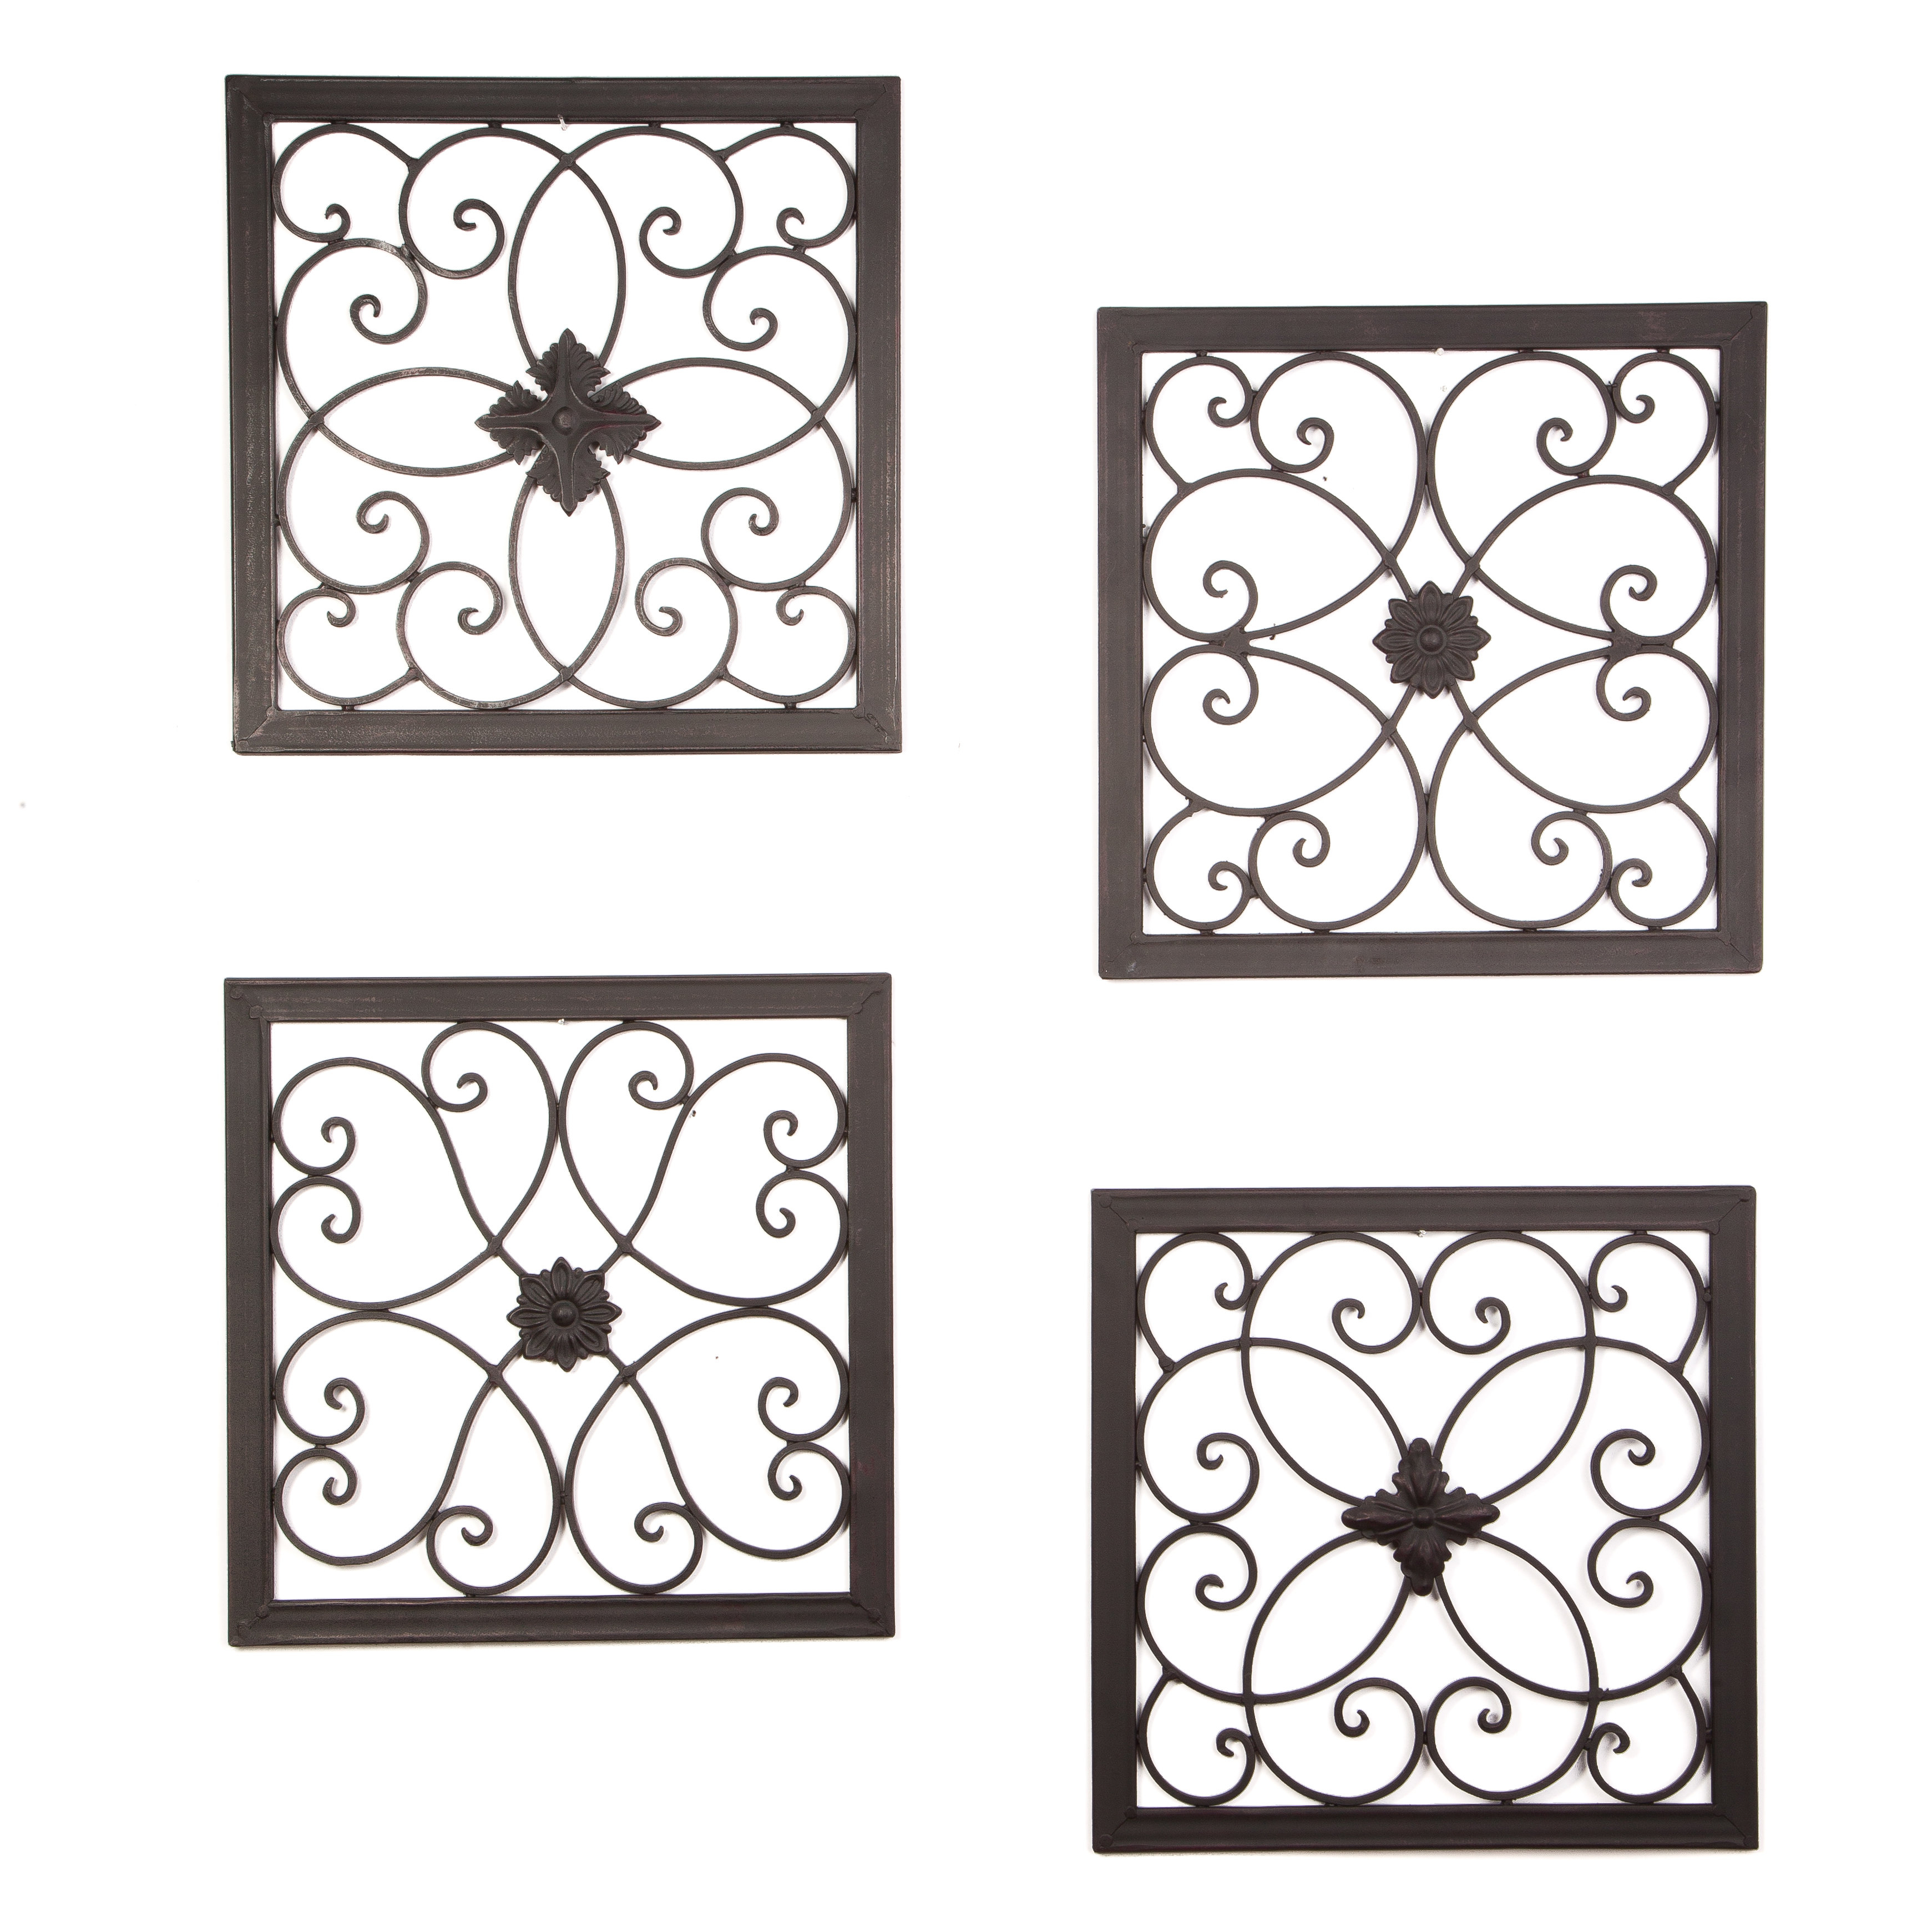 4 Piece Wall Décor Set Intended For 4 Piece Wall Decor Sets (View 7 of 30)